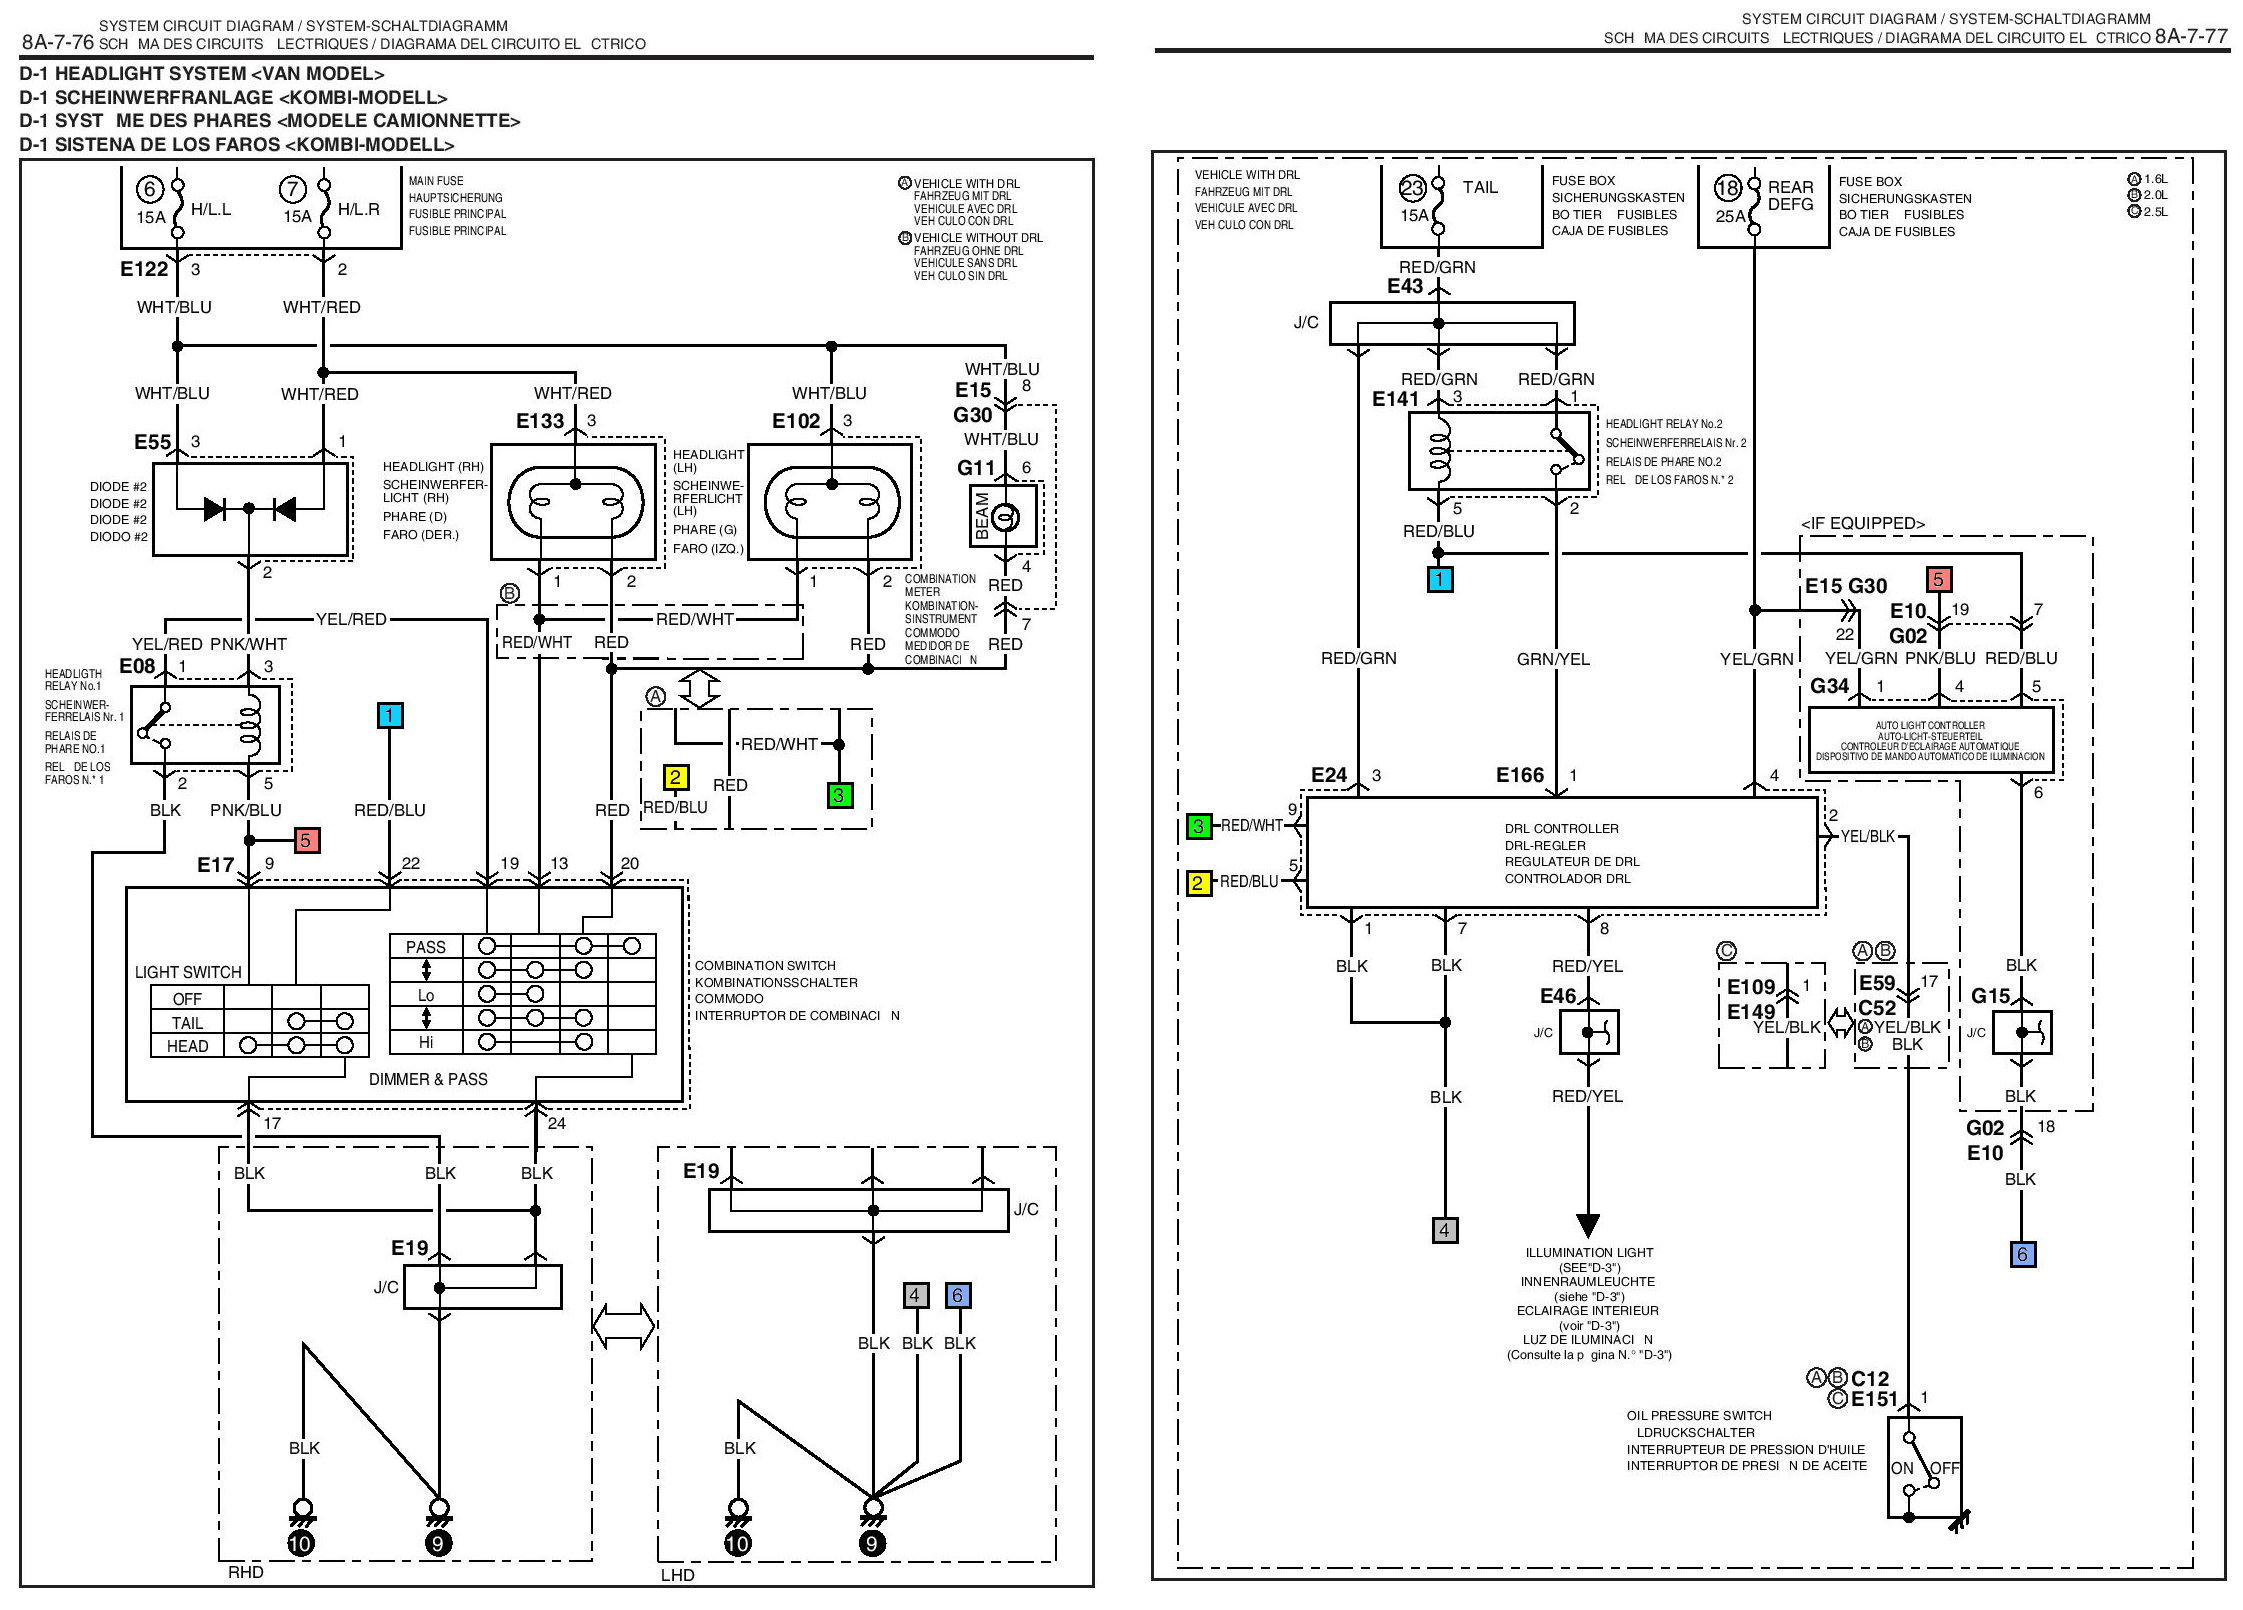 Tail Light Wiring Diagram For Samurai 2007 Suzuki Xl7 41 Images Sxzxu6roebgqcrdzg Drl Problem Forums Forum Site Ignition At